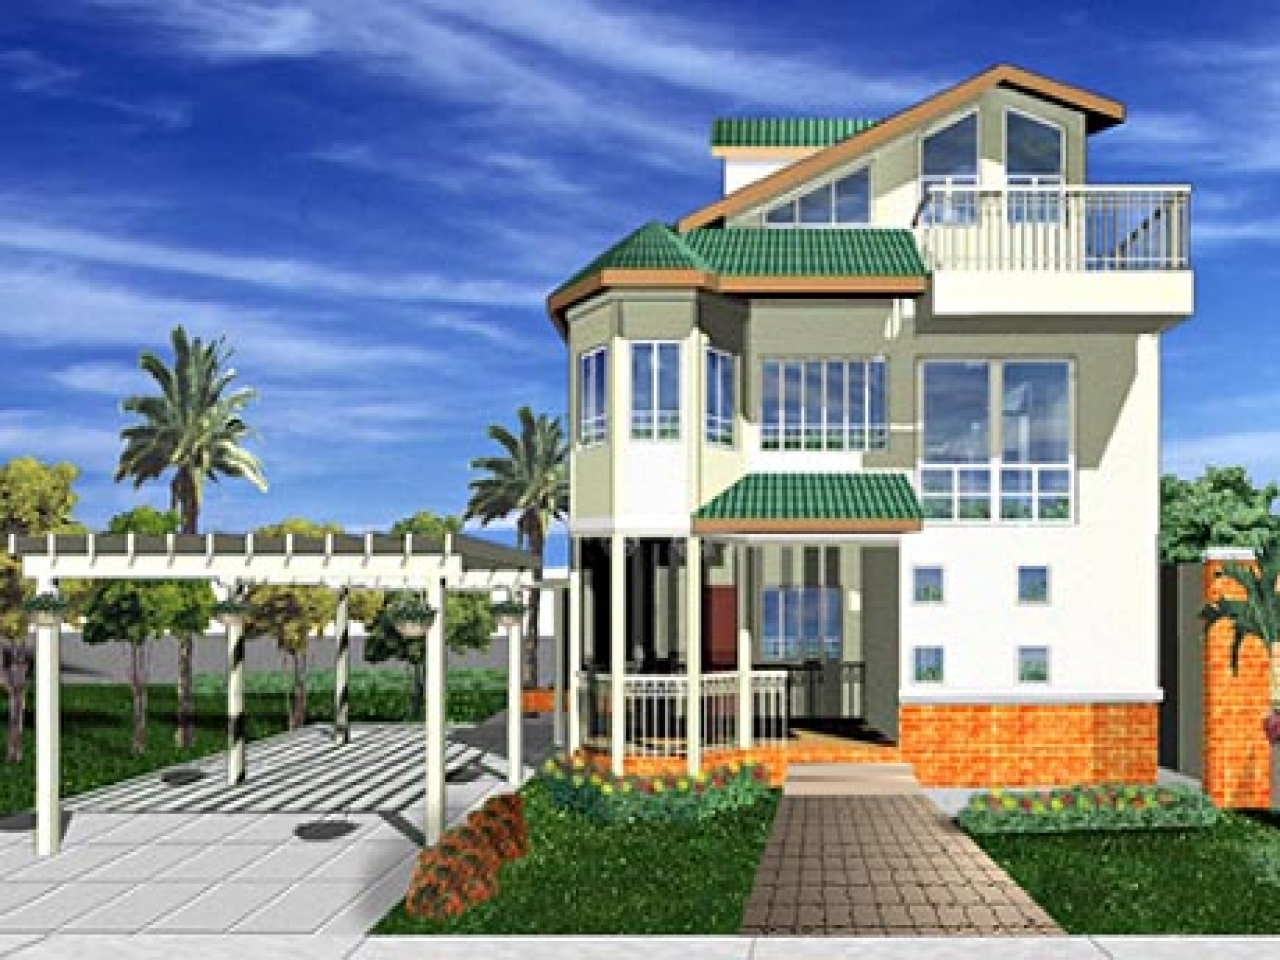 Modern beach house plans designs modern small house plans for Small modern beach house